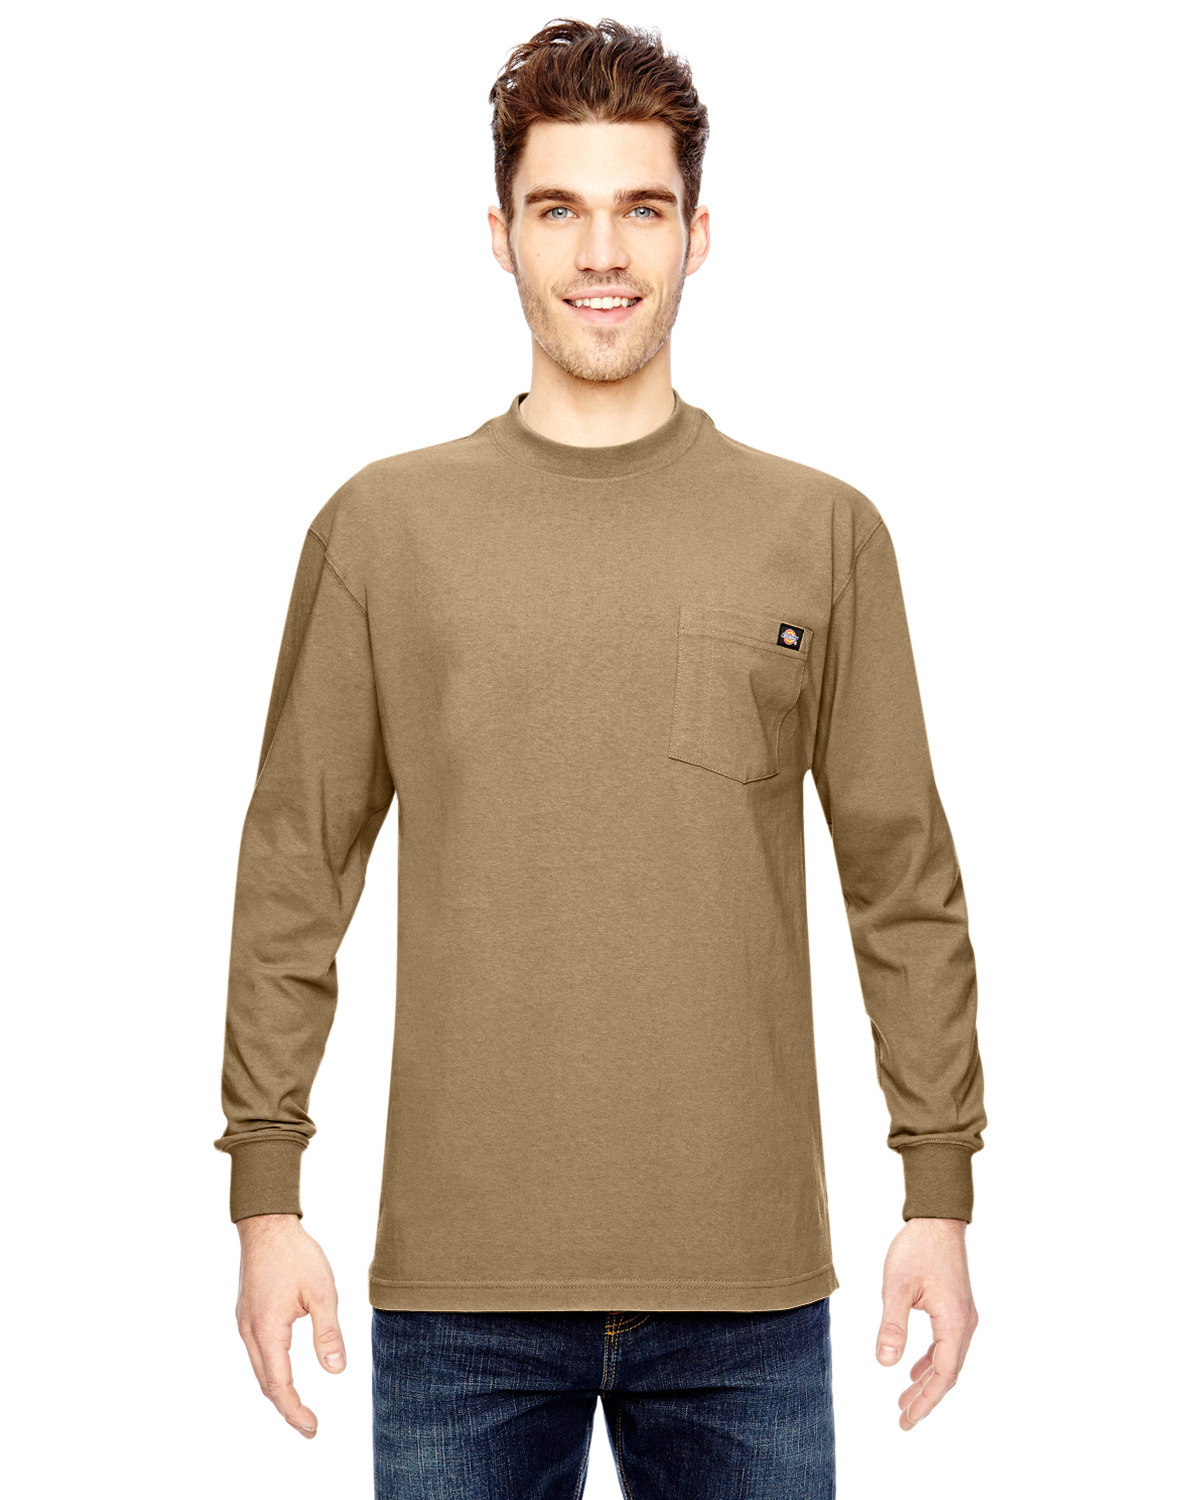 Dickies 6.75 Oz. Heavyweight Work Long-Sleeve T-Shirt